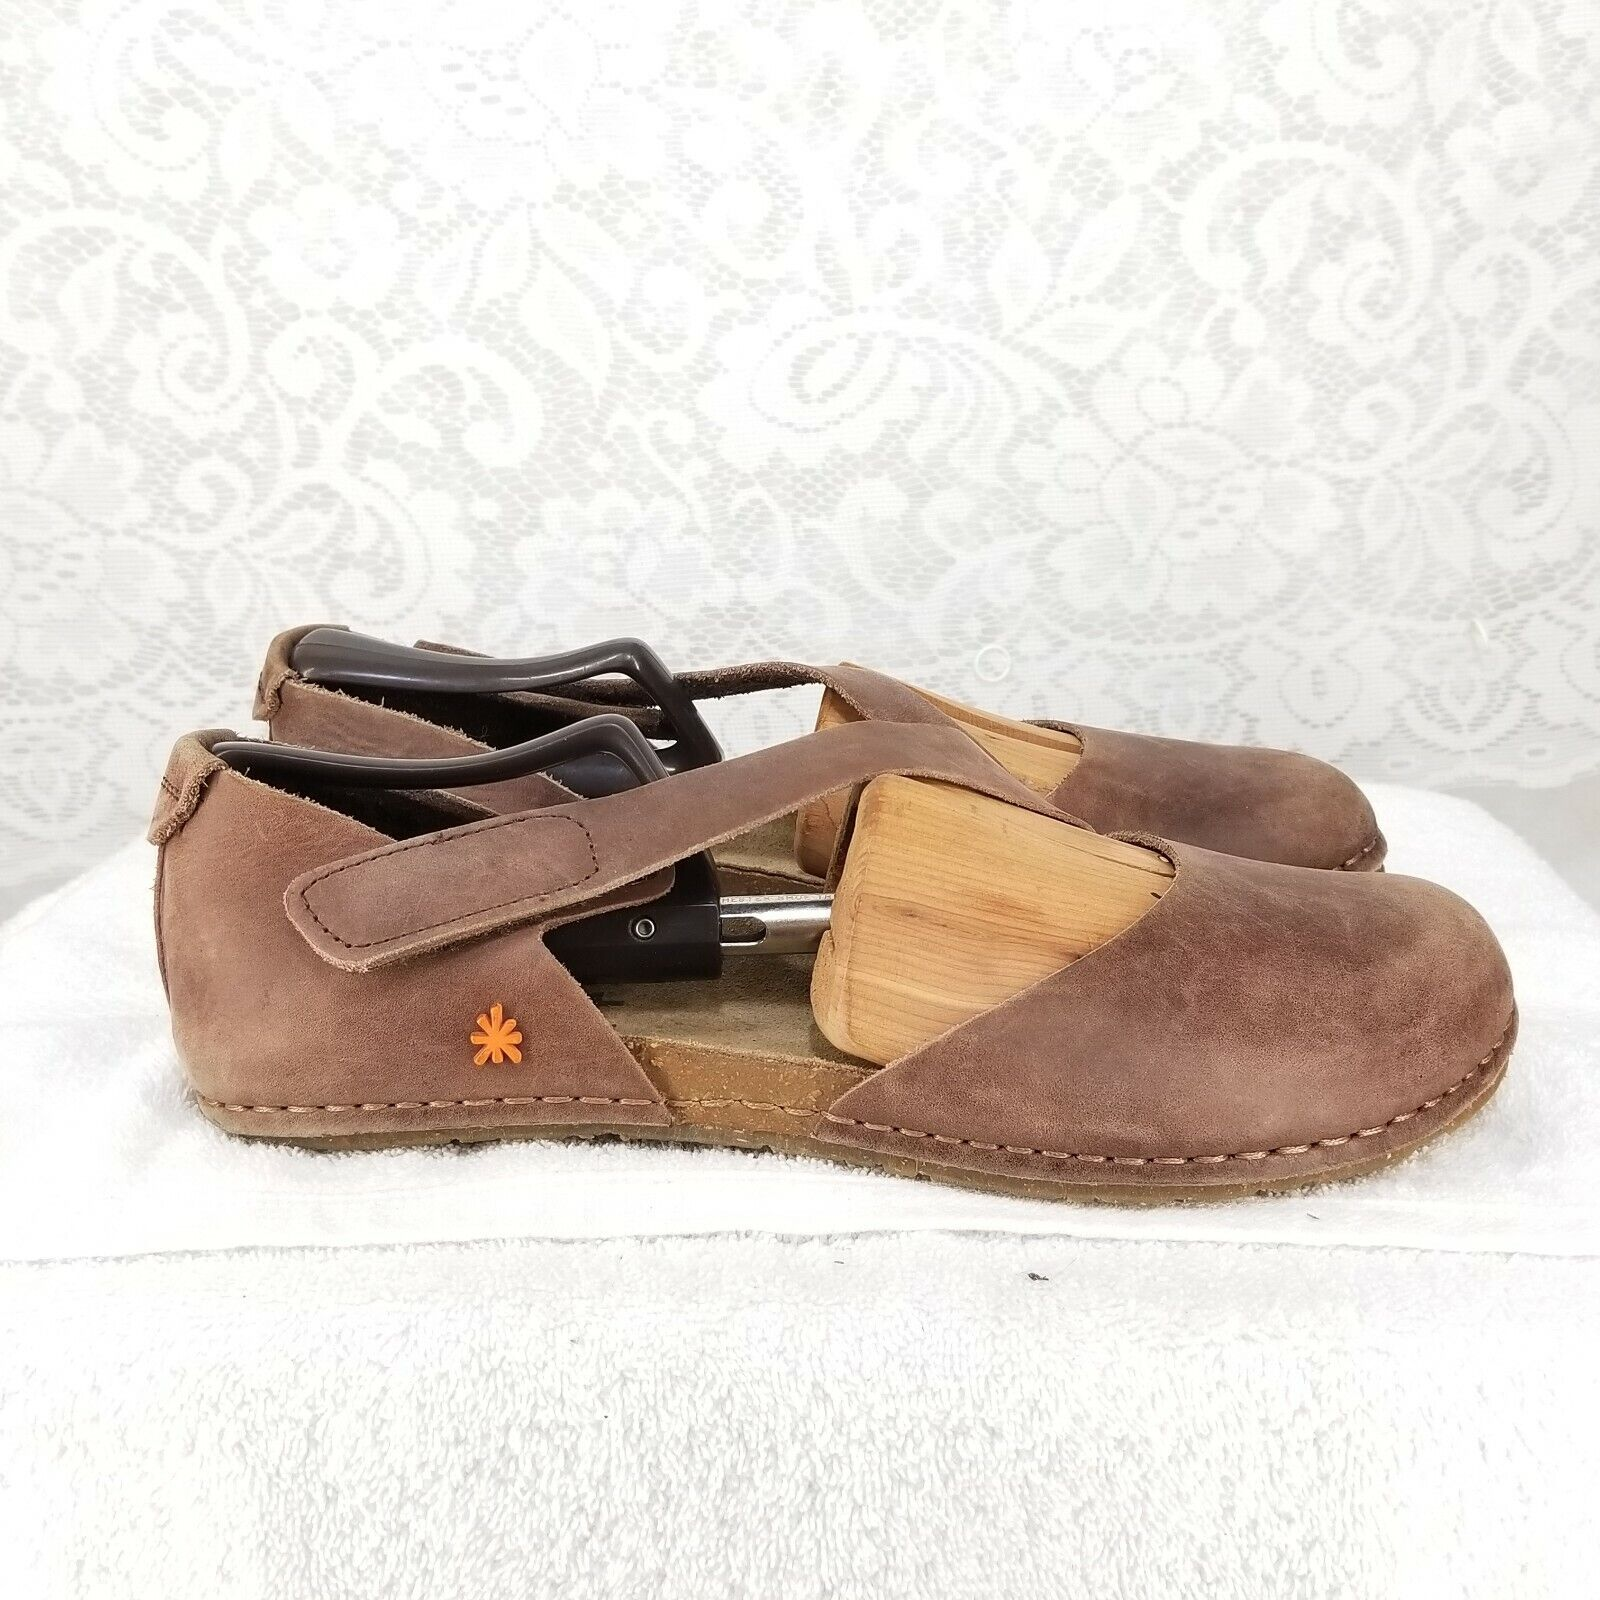 The Art Company Womens Brown Leather D'orsay Cork Flats Size 42